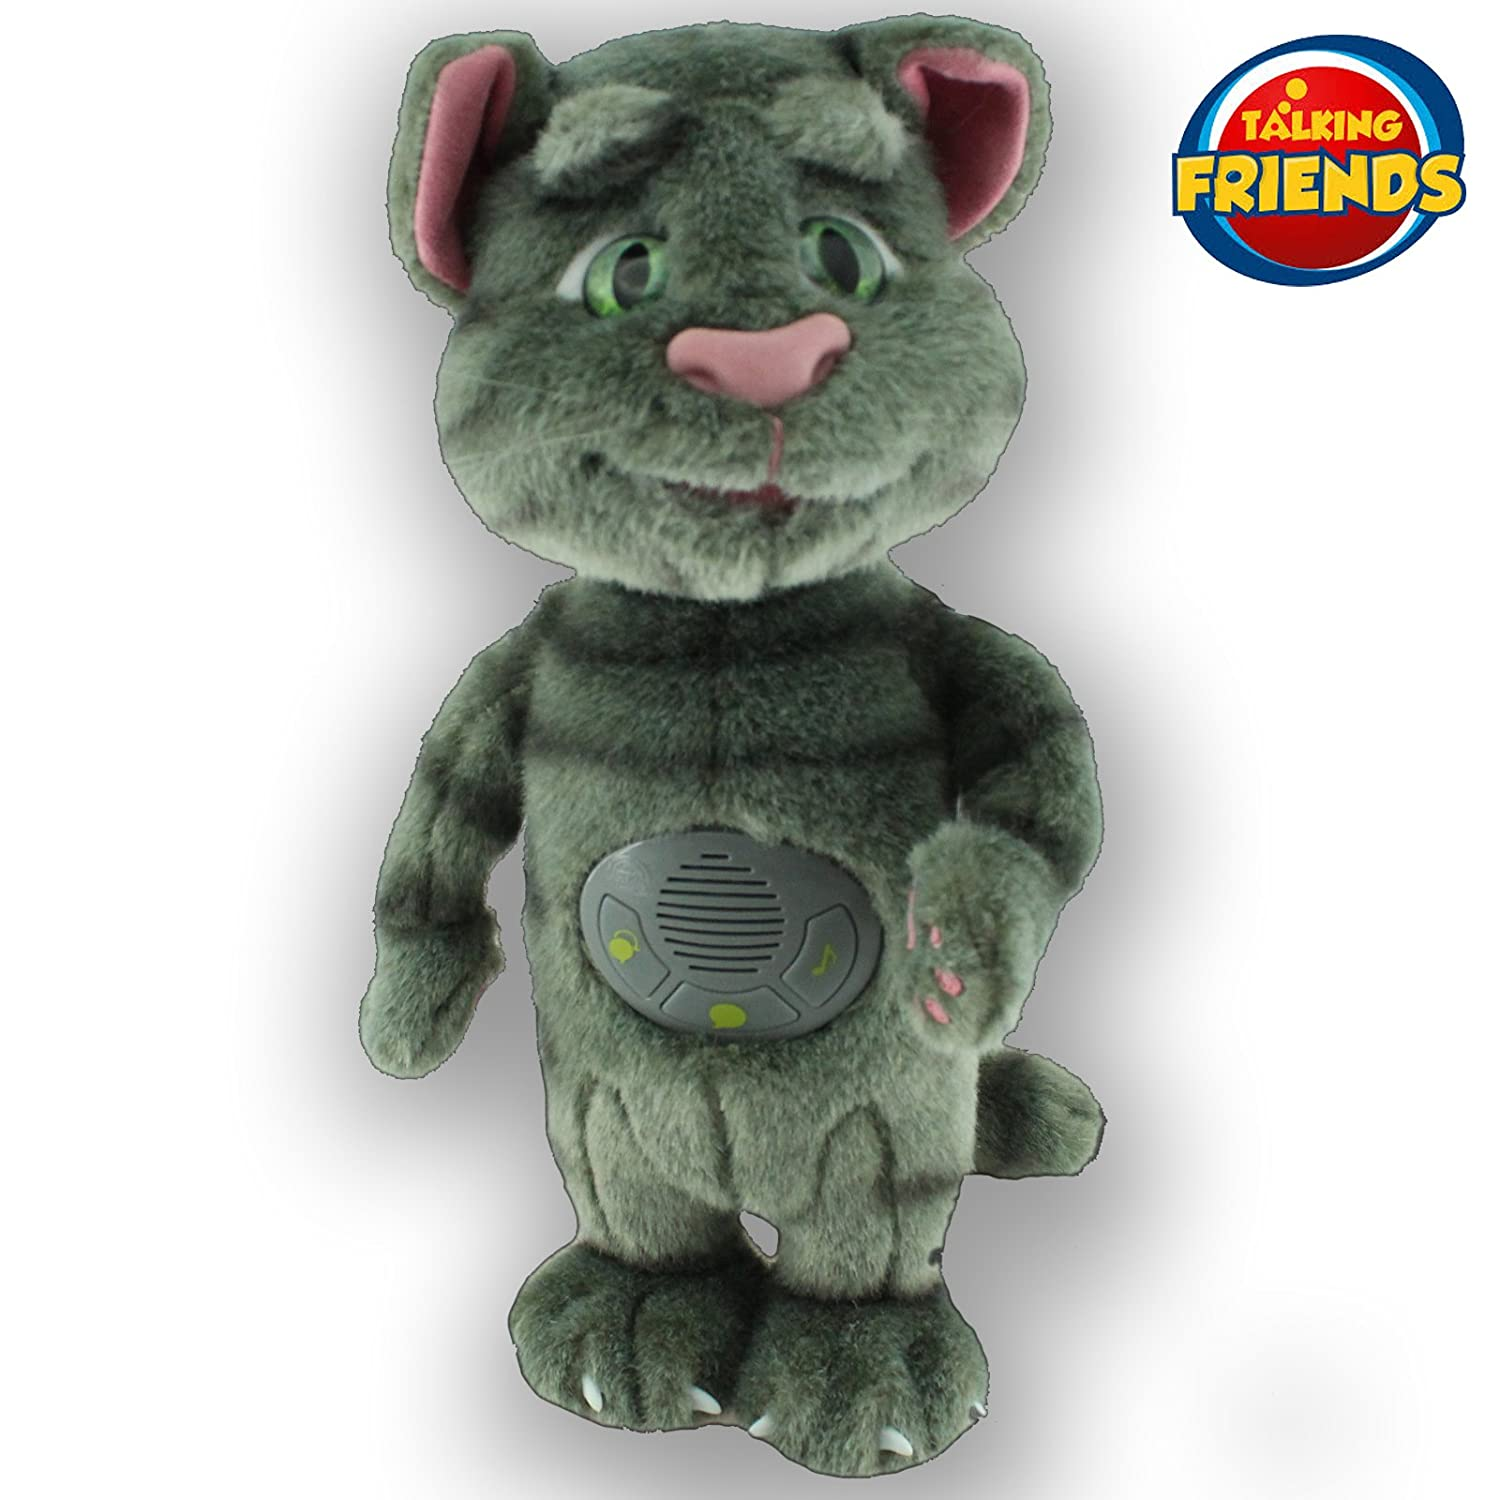 TALKING TOM AND FRIENDS, Talking Friends Toy de Peluche con increíbles Efectos de Sonido, Licencia Completa, 5292522136724.: Amazon.es: Juguetes y juegos